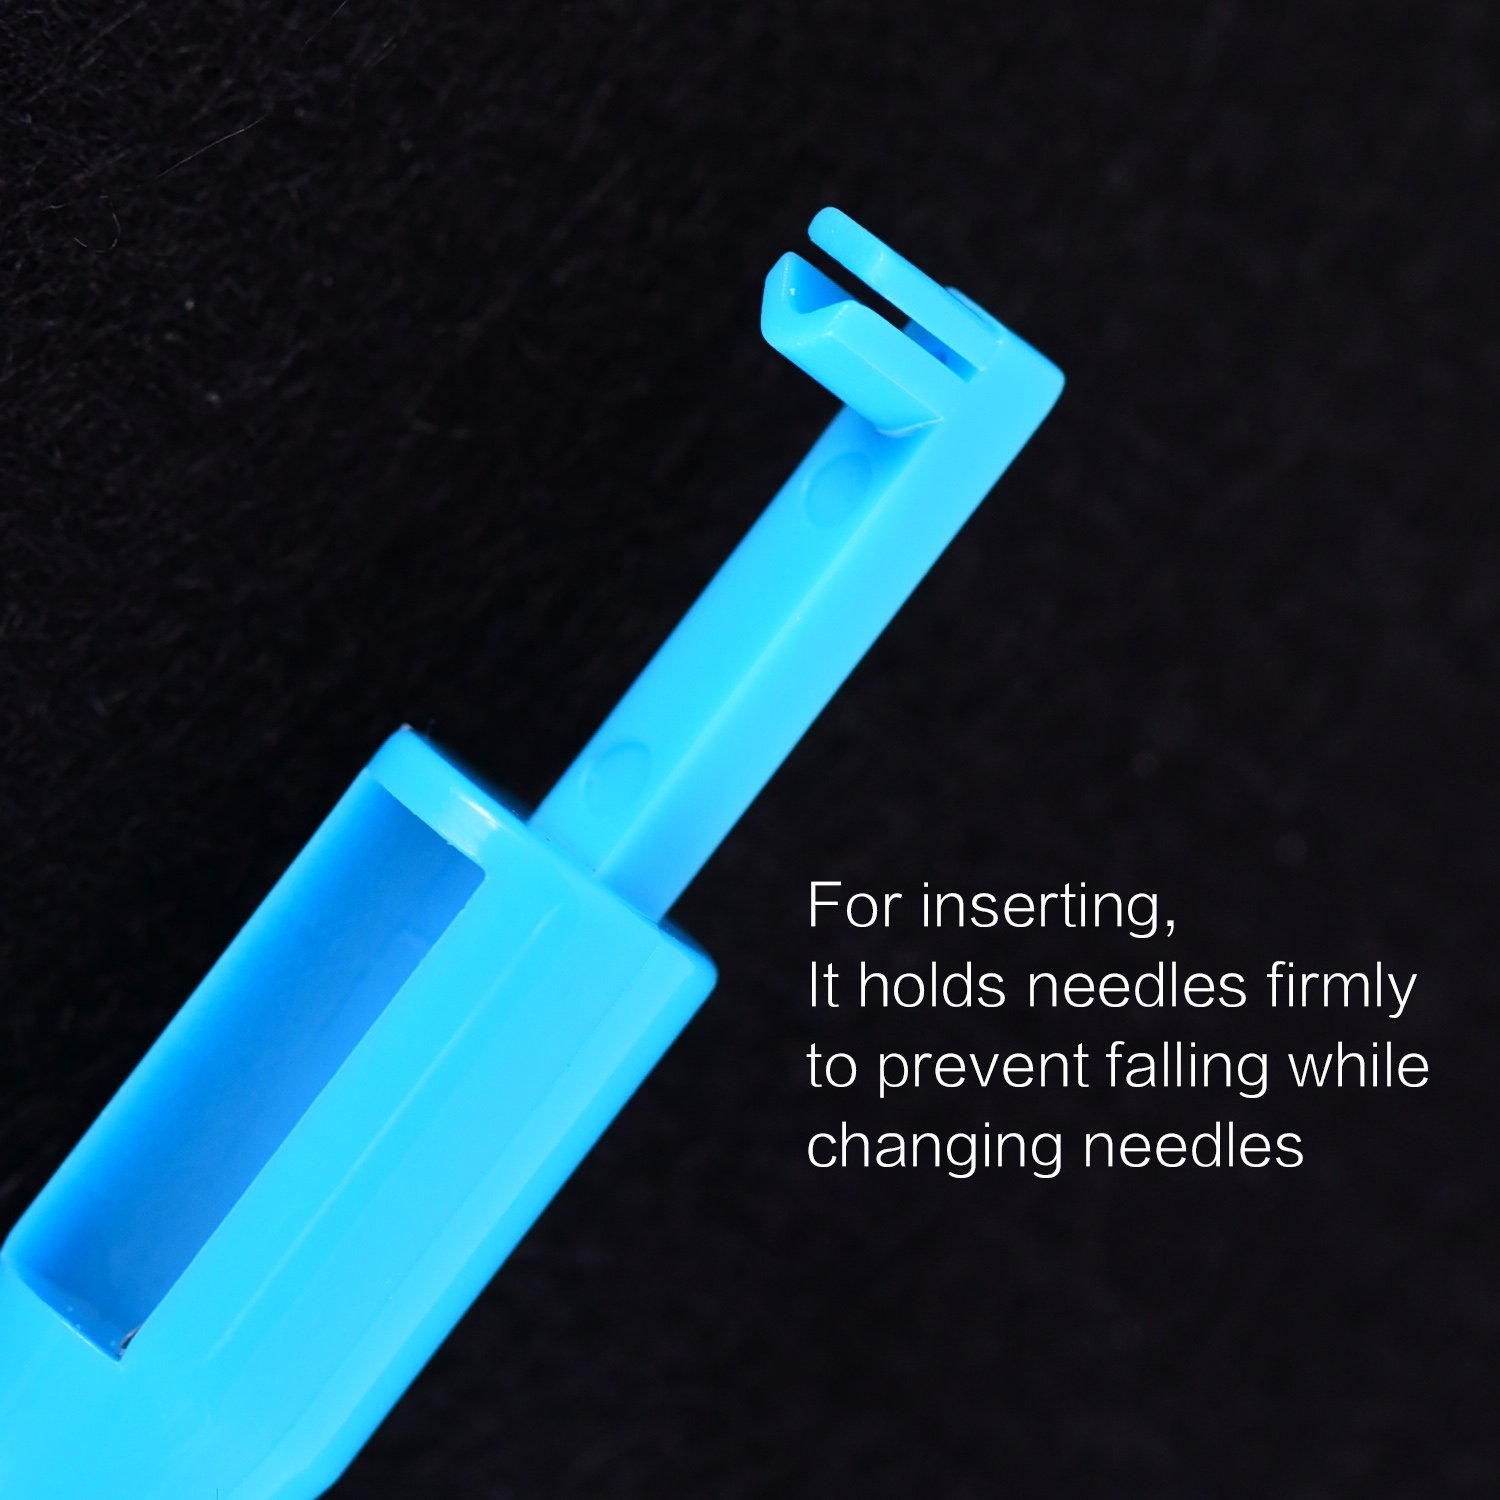 Hicarer 3 Pieces Sewing Needle Inserter Automatic Needle Threader Needle Threading Tool for Sewing Machine